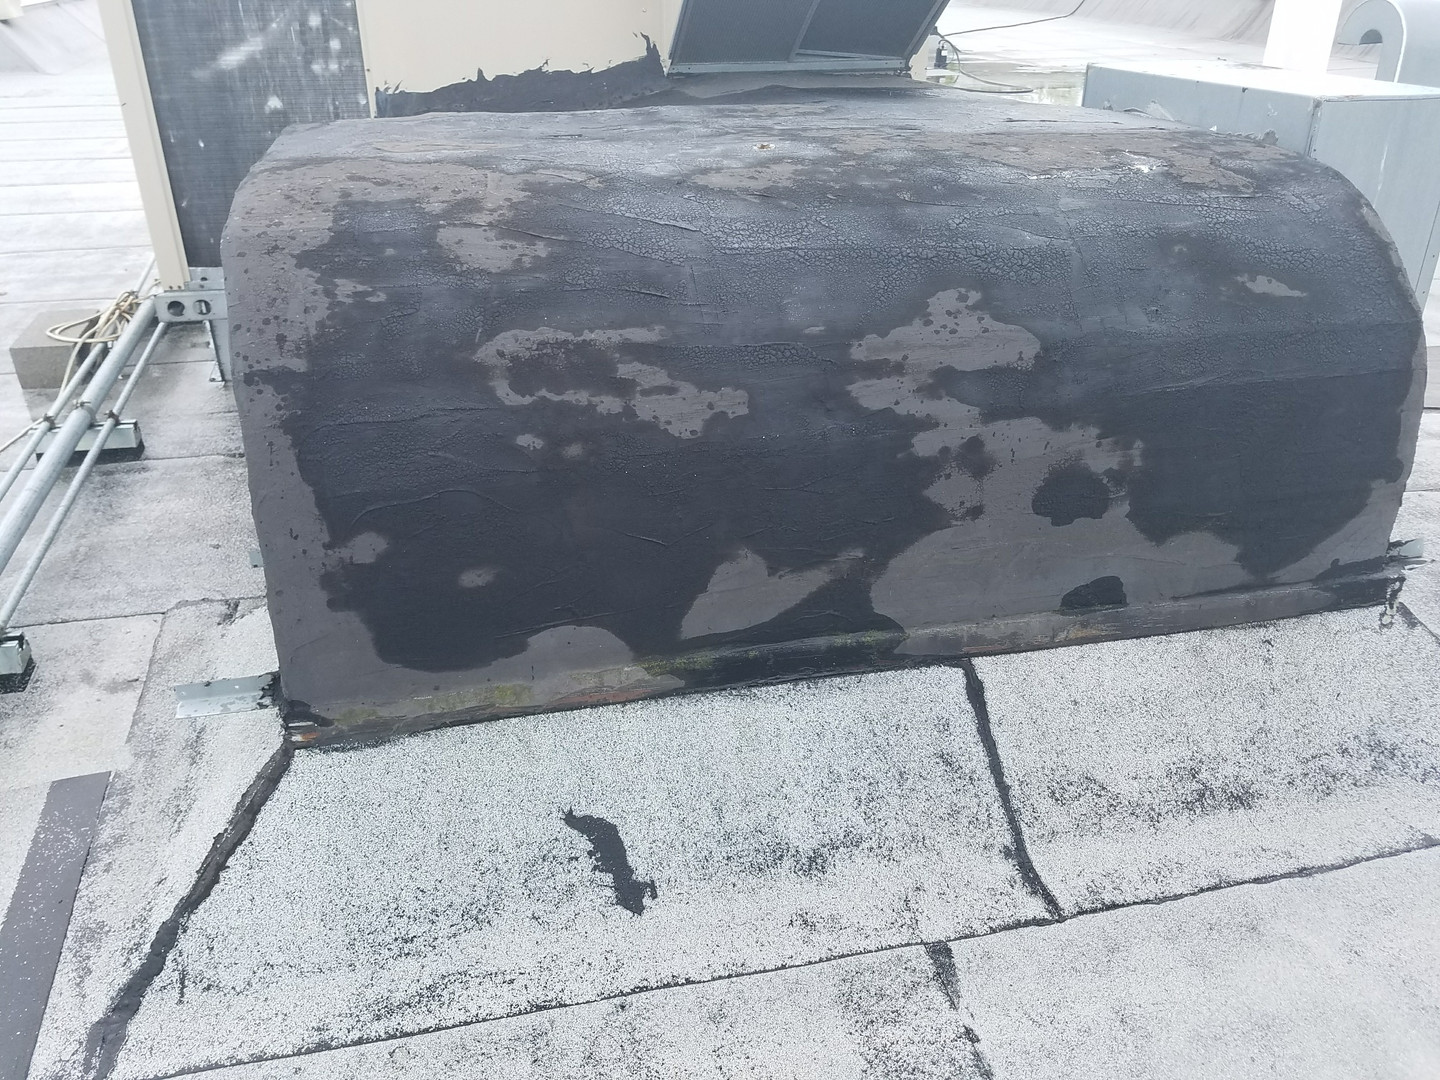 Initial Survey - Black Tar on Duct, Typical Form